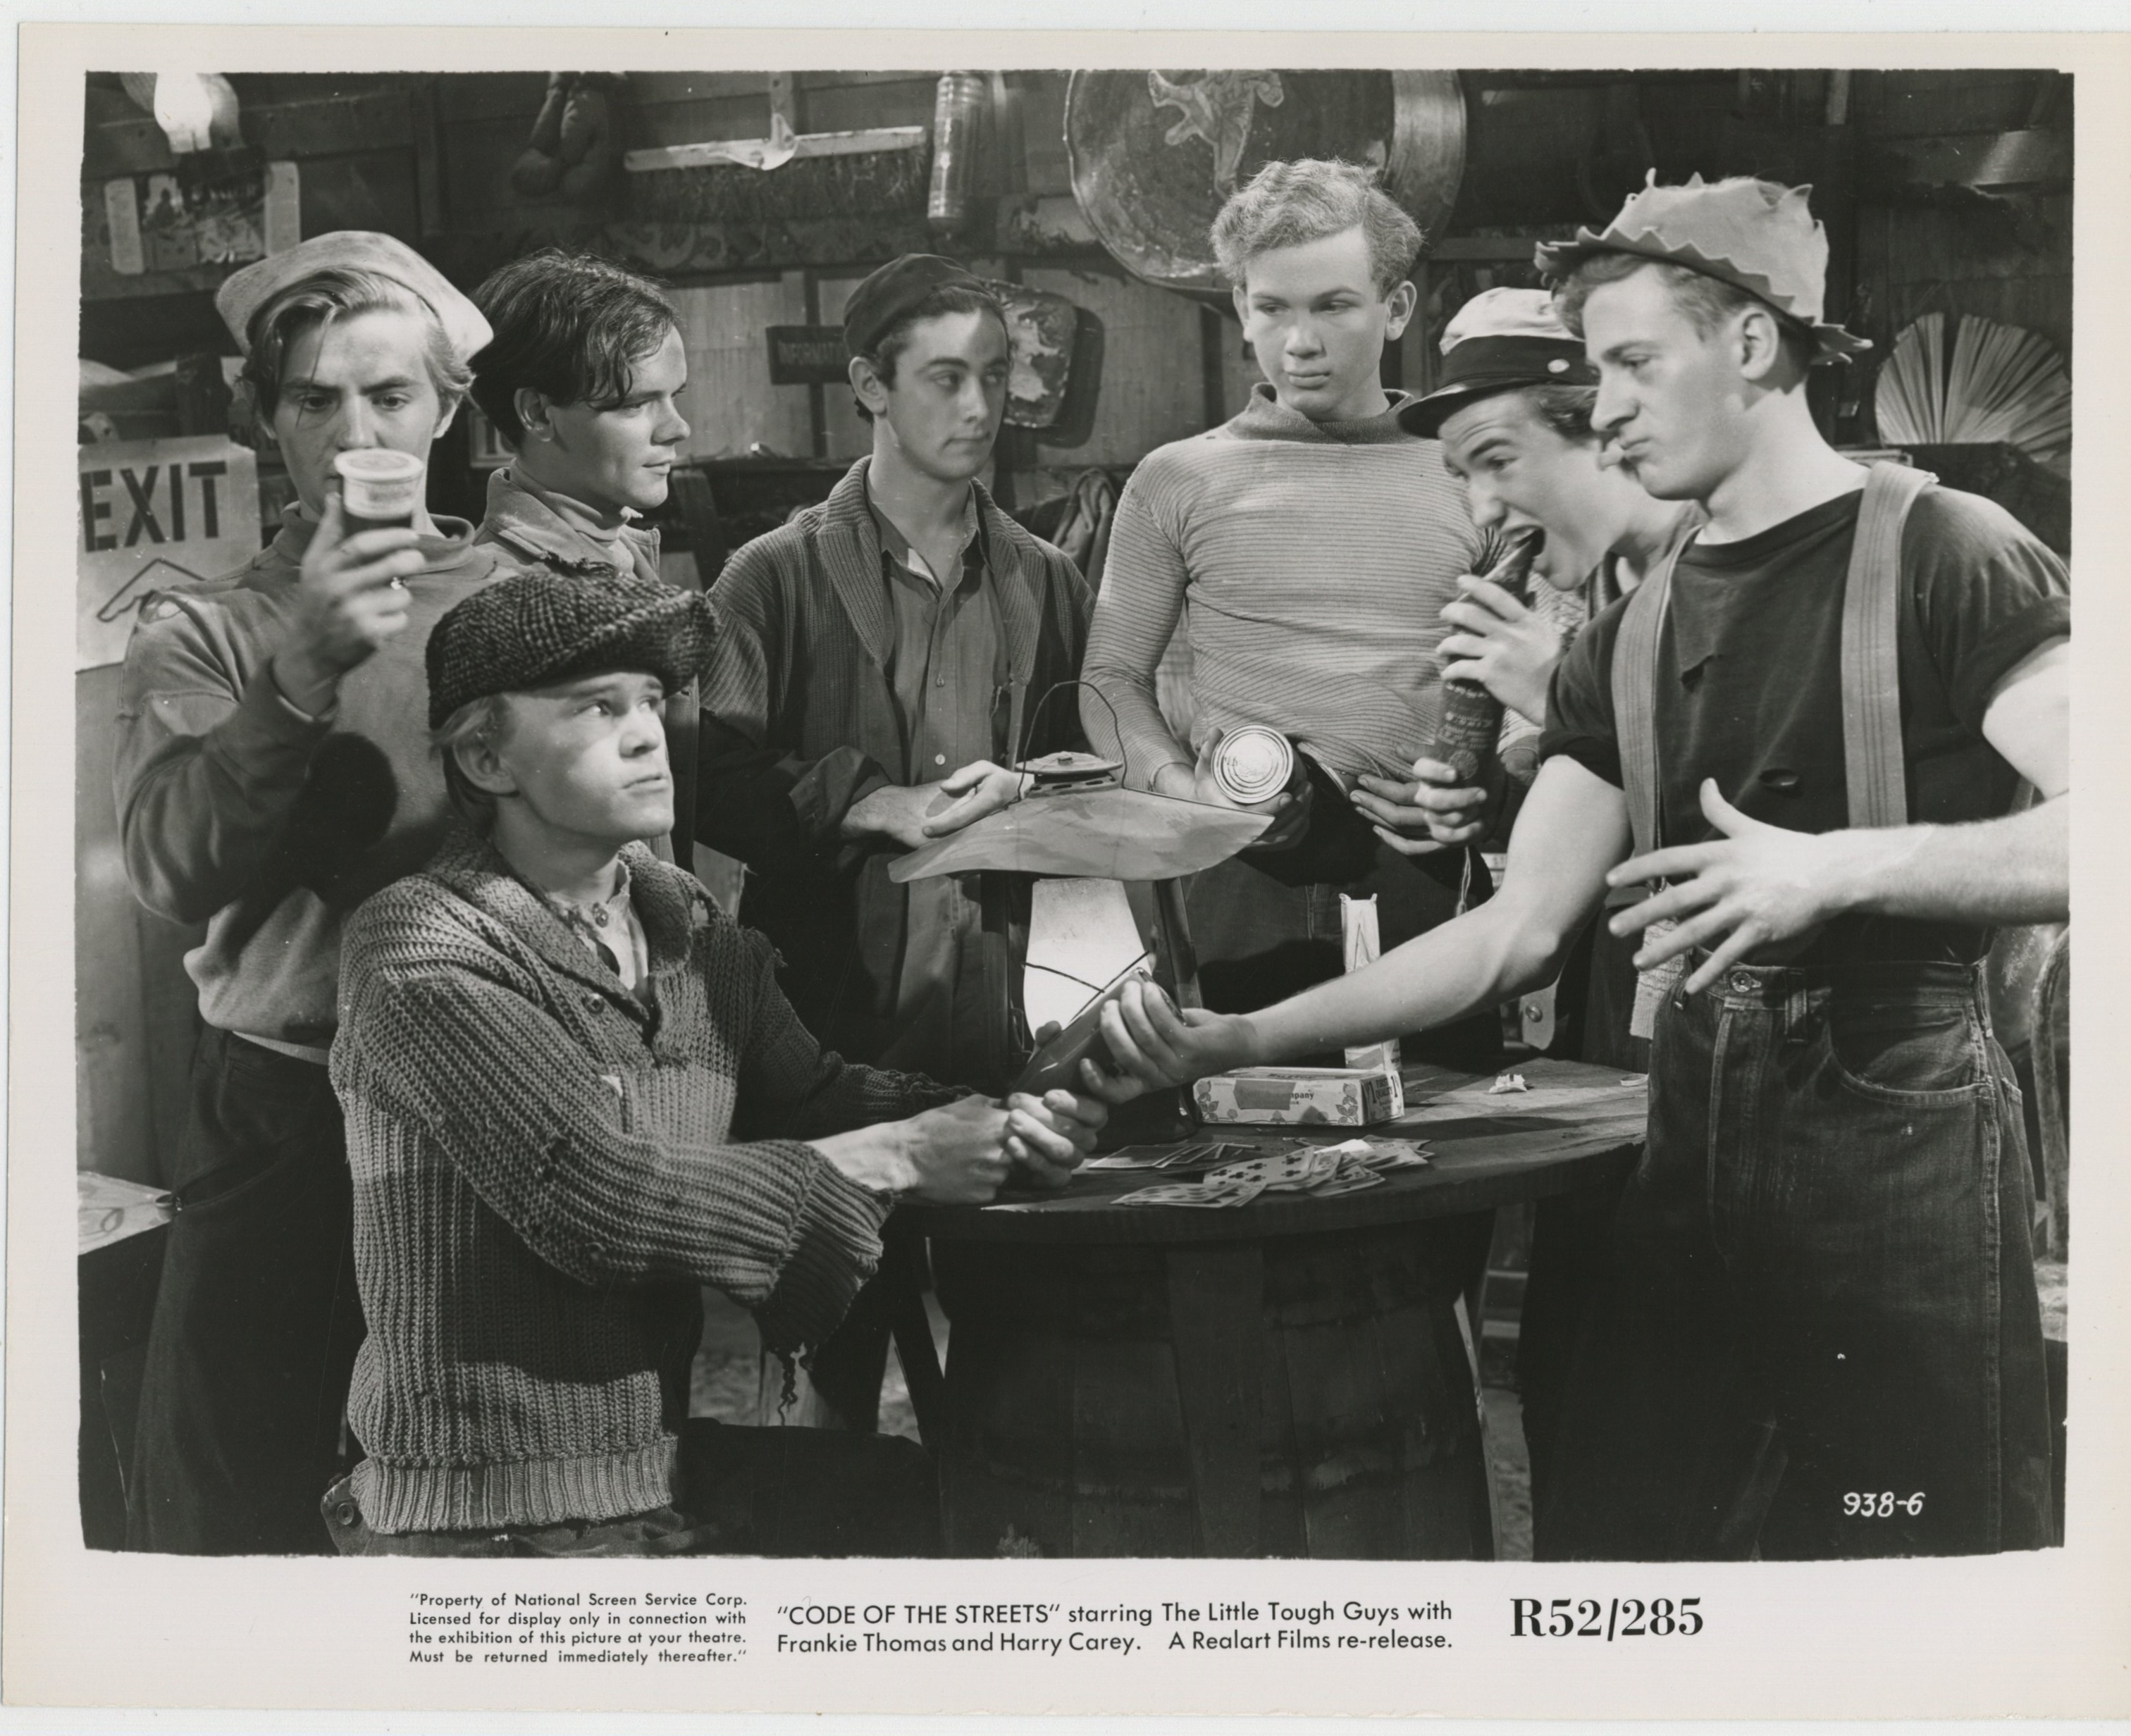 William 'Billy' Benedict, Harris Berger, Hal E. Chester, Mark Daniels, Charles Duncan, David Gorcey, James McCallion, and Frankie Thomas in Code of the Streets (1939)